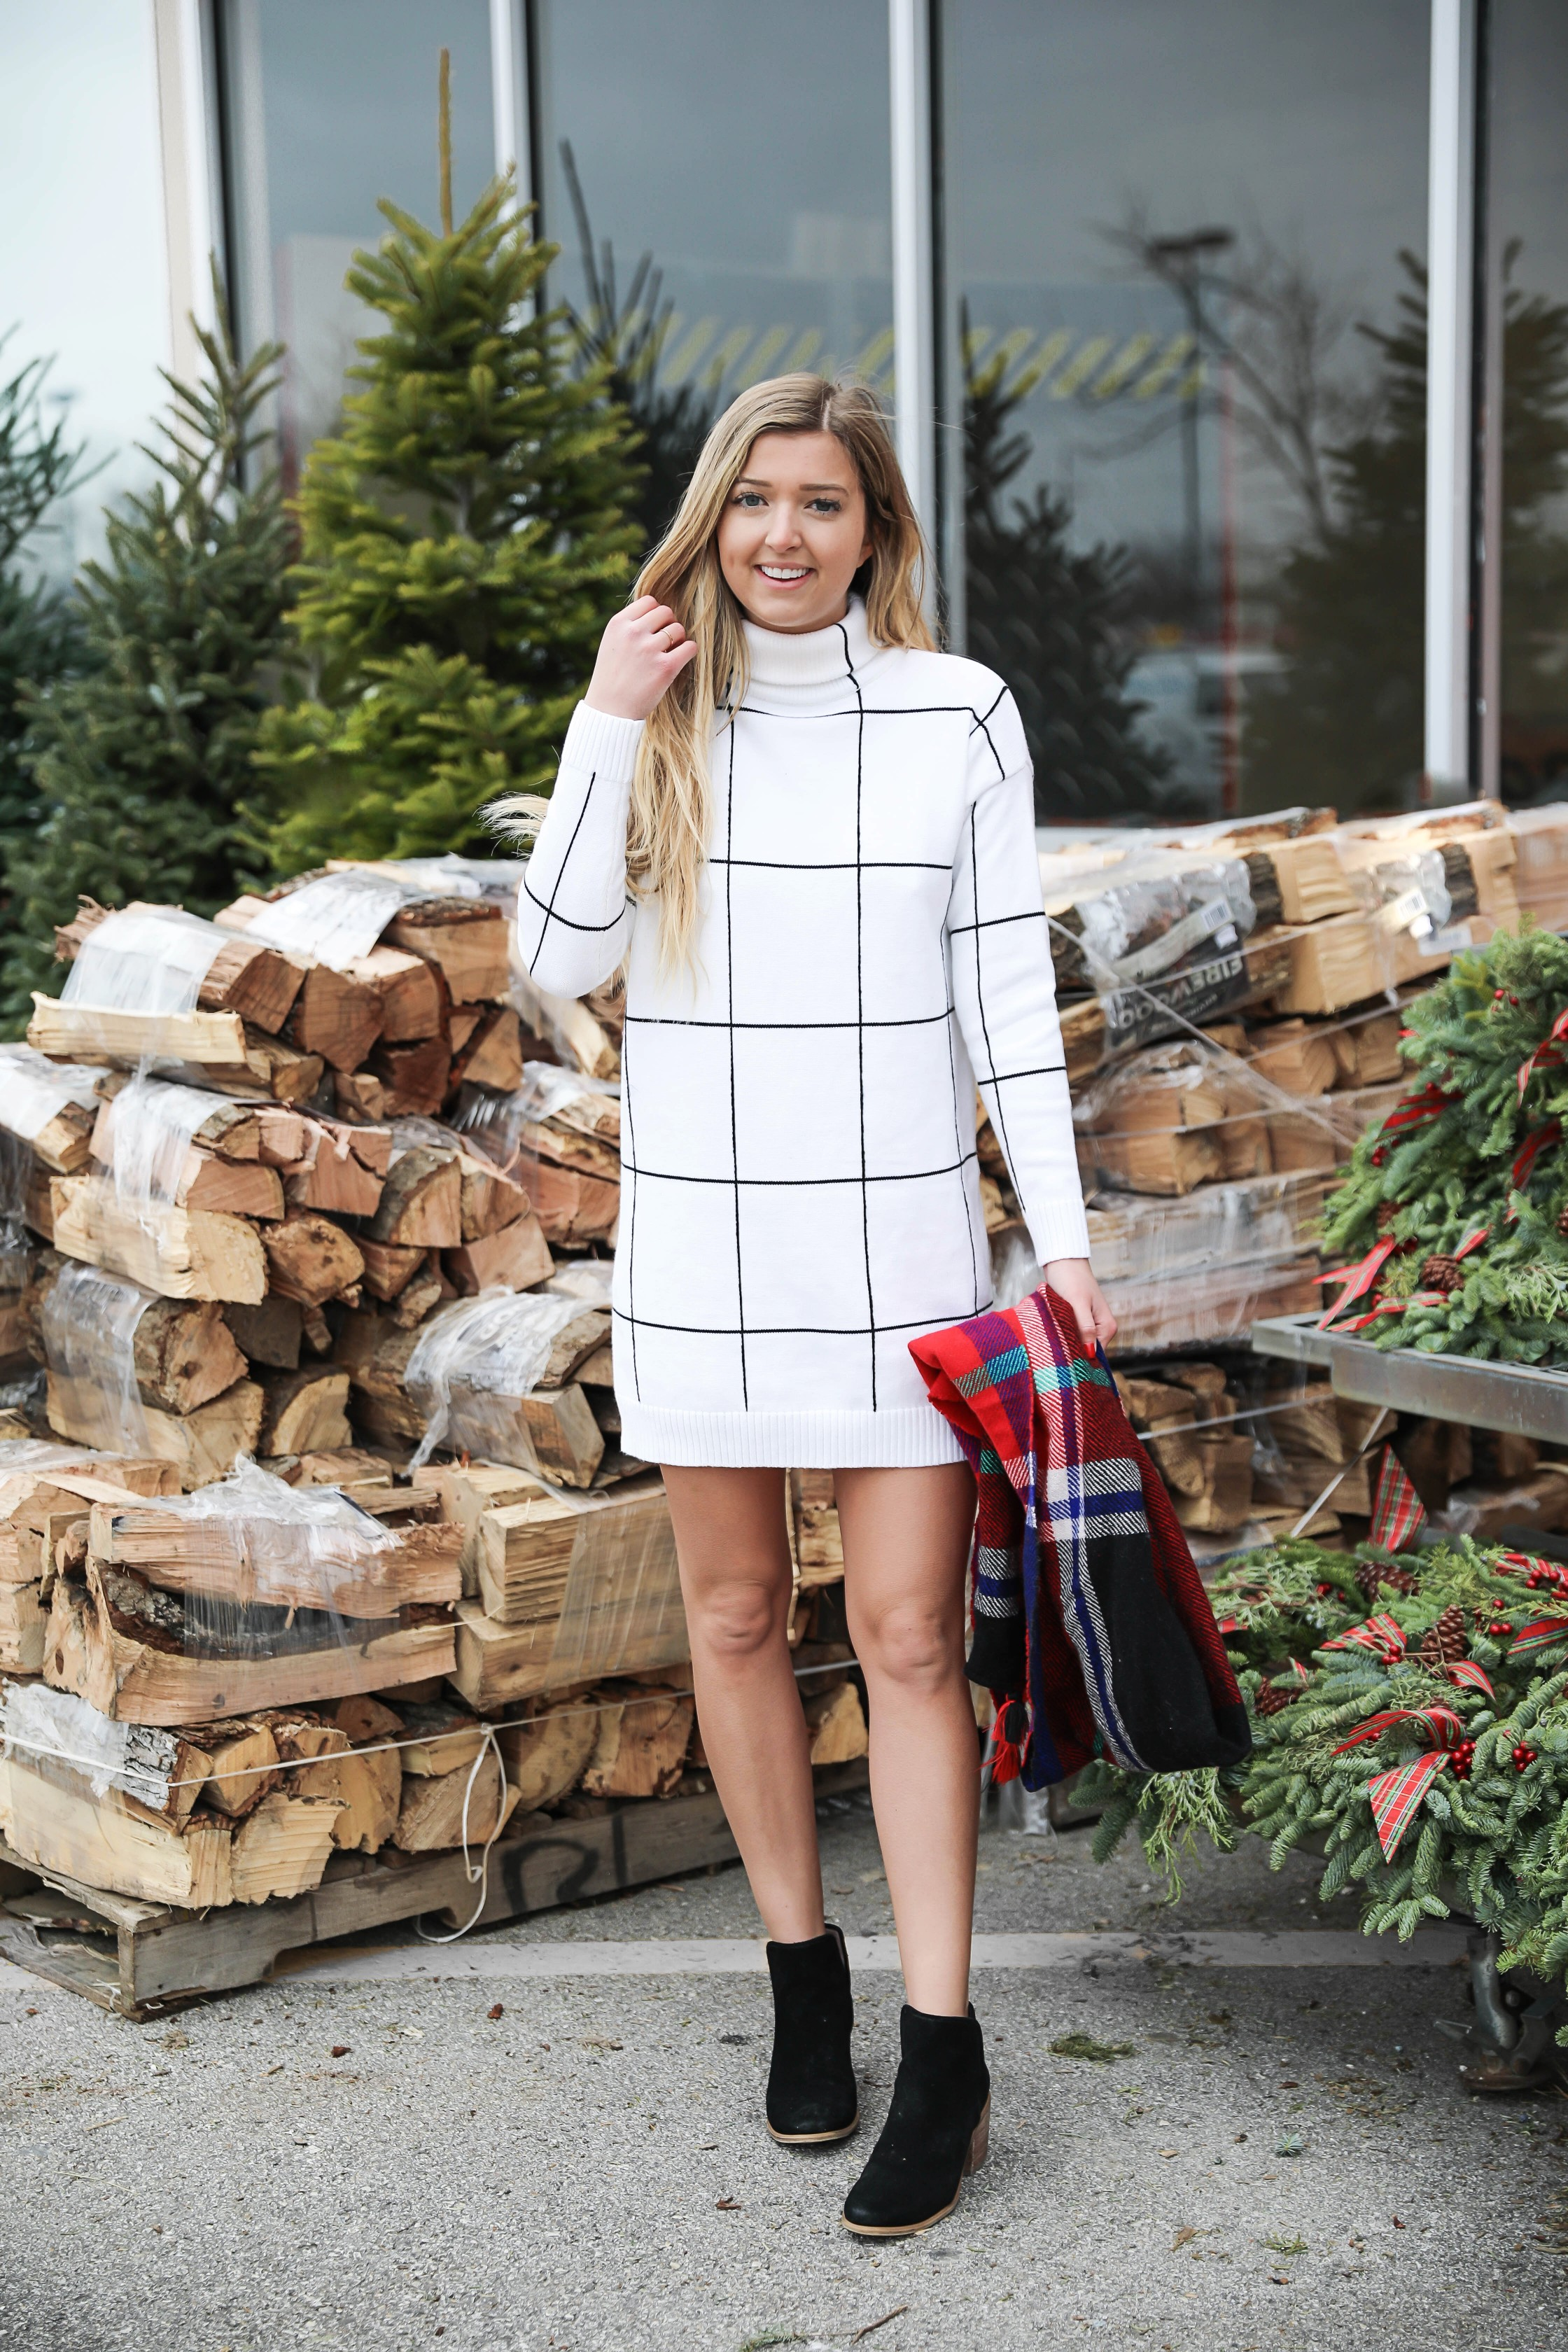 The cutest black and white window pane dress from chicwish! I paired it with my favorite jcrew red plaid scarf and my black hinge booties from Nordstrom BP! Details on this winter outfit on fashion blog daily dose of charm by lauren lindmark